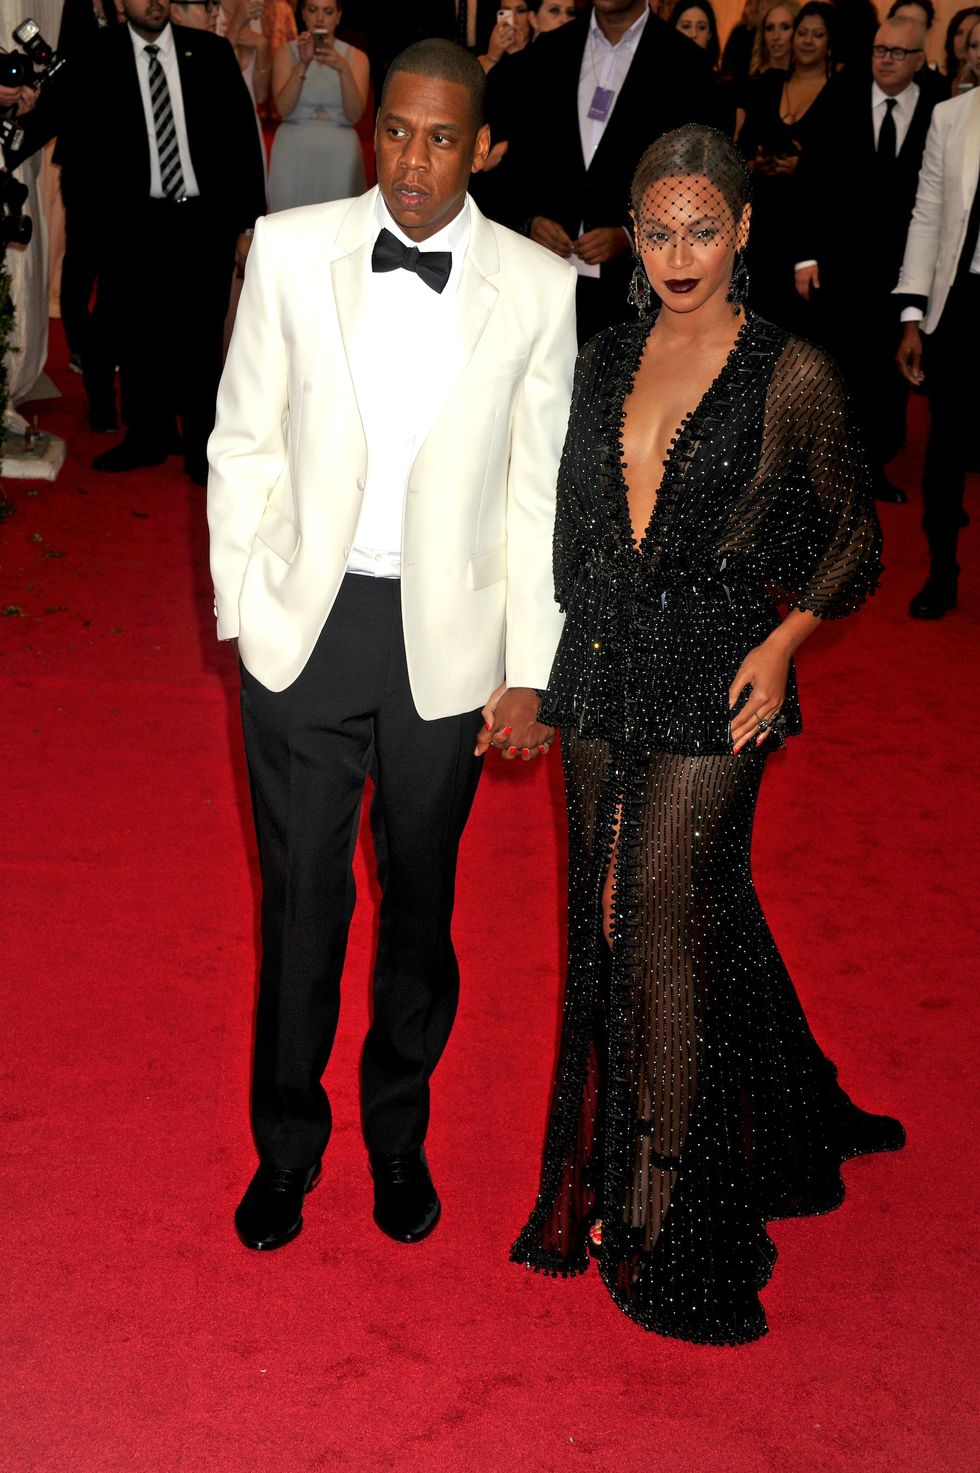 Red Carpet Looks from the 2014 Met Gala